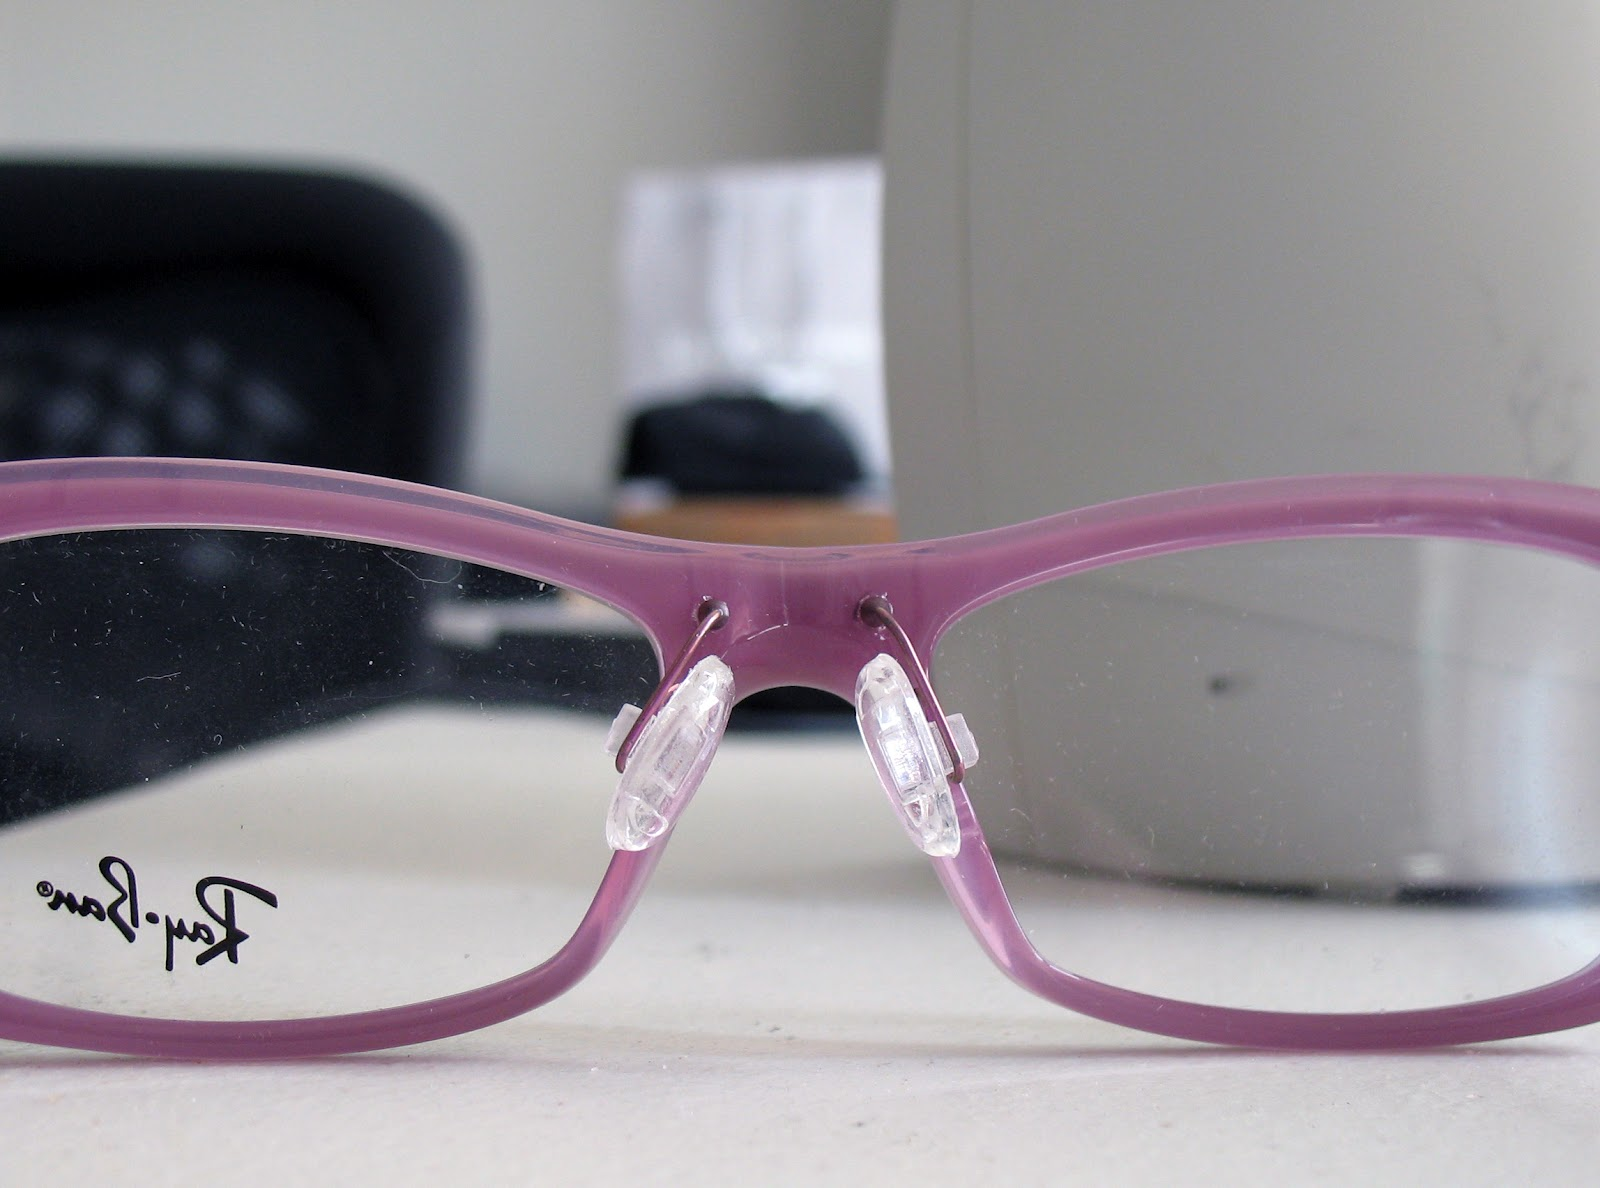 khrome at play: When One-Size-Fits-Most Eyeglass Frames ...